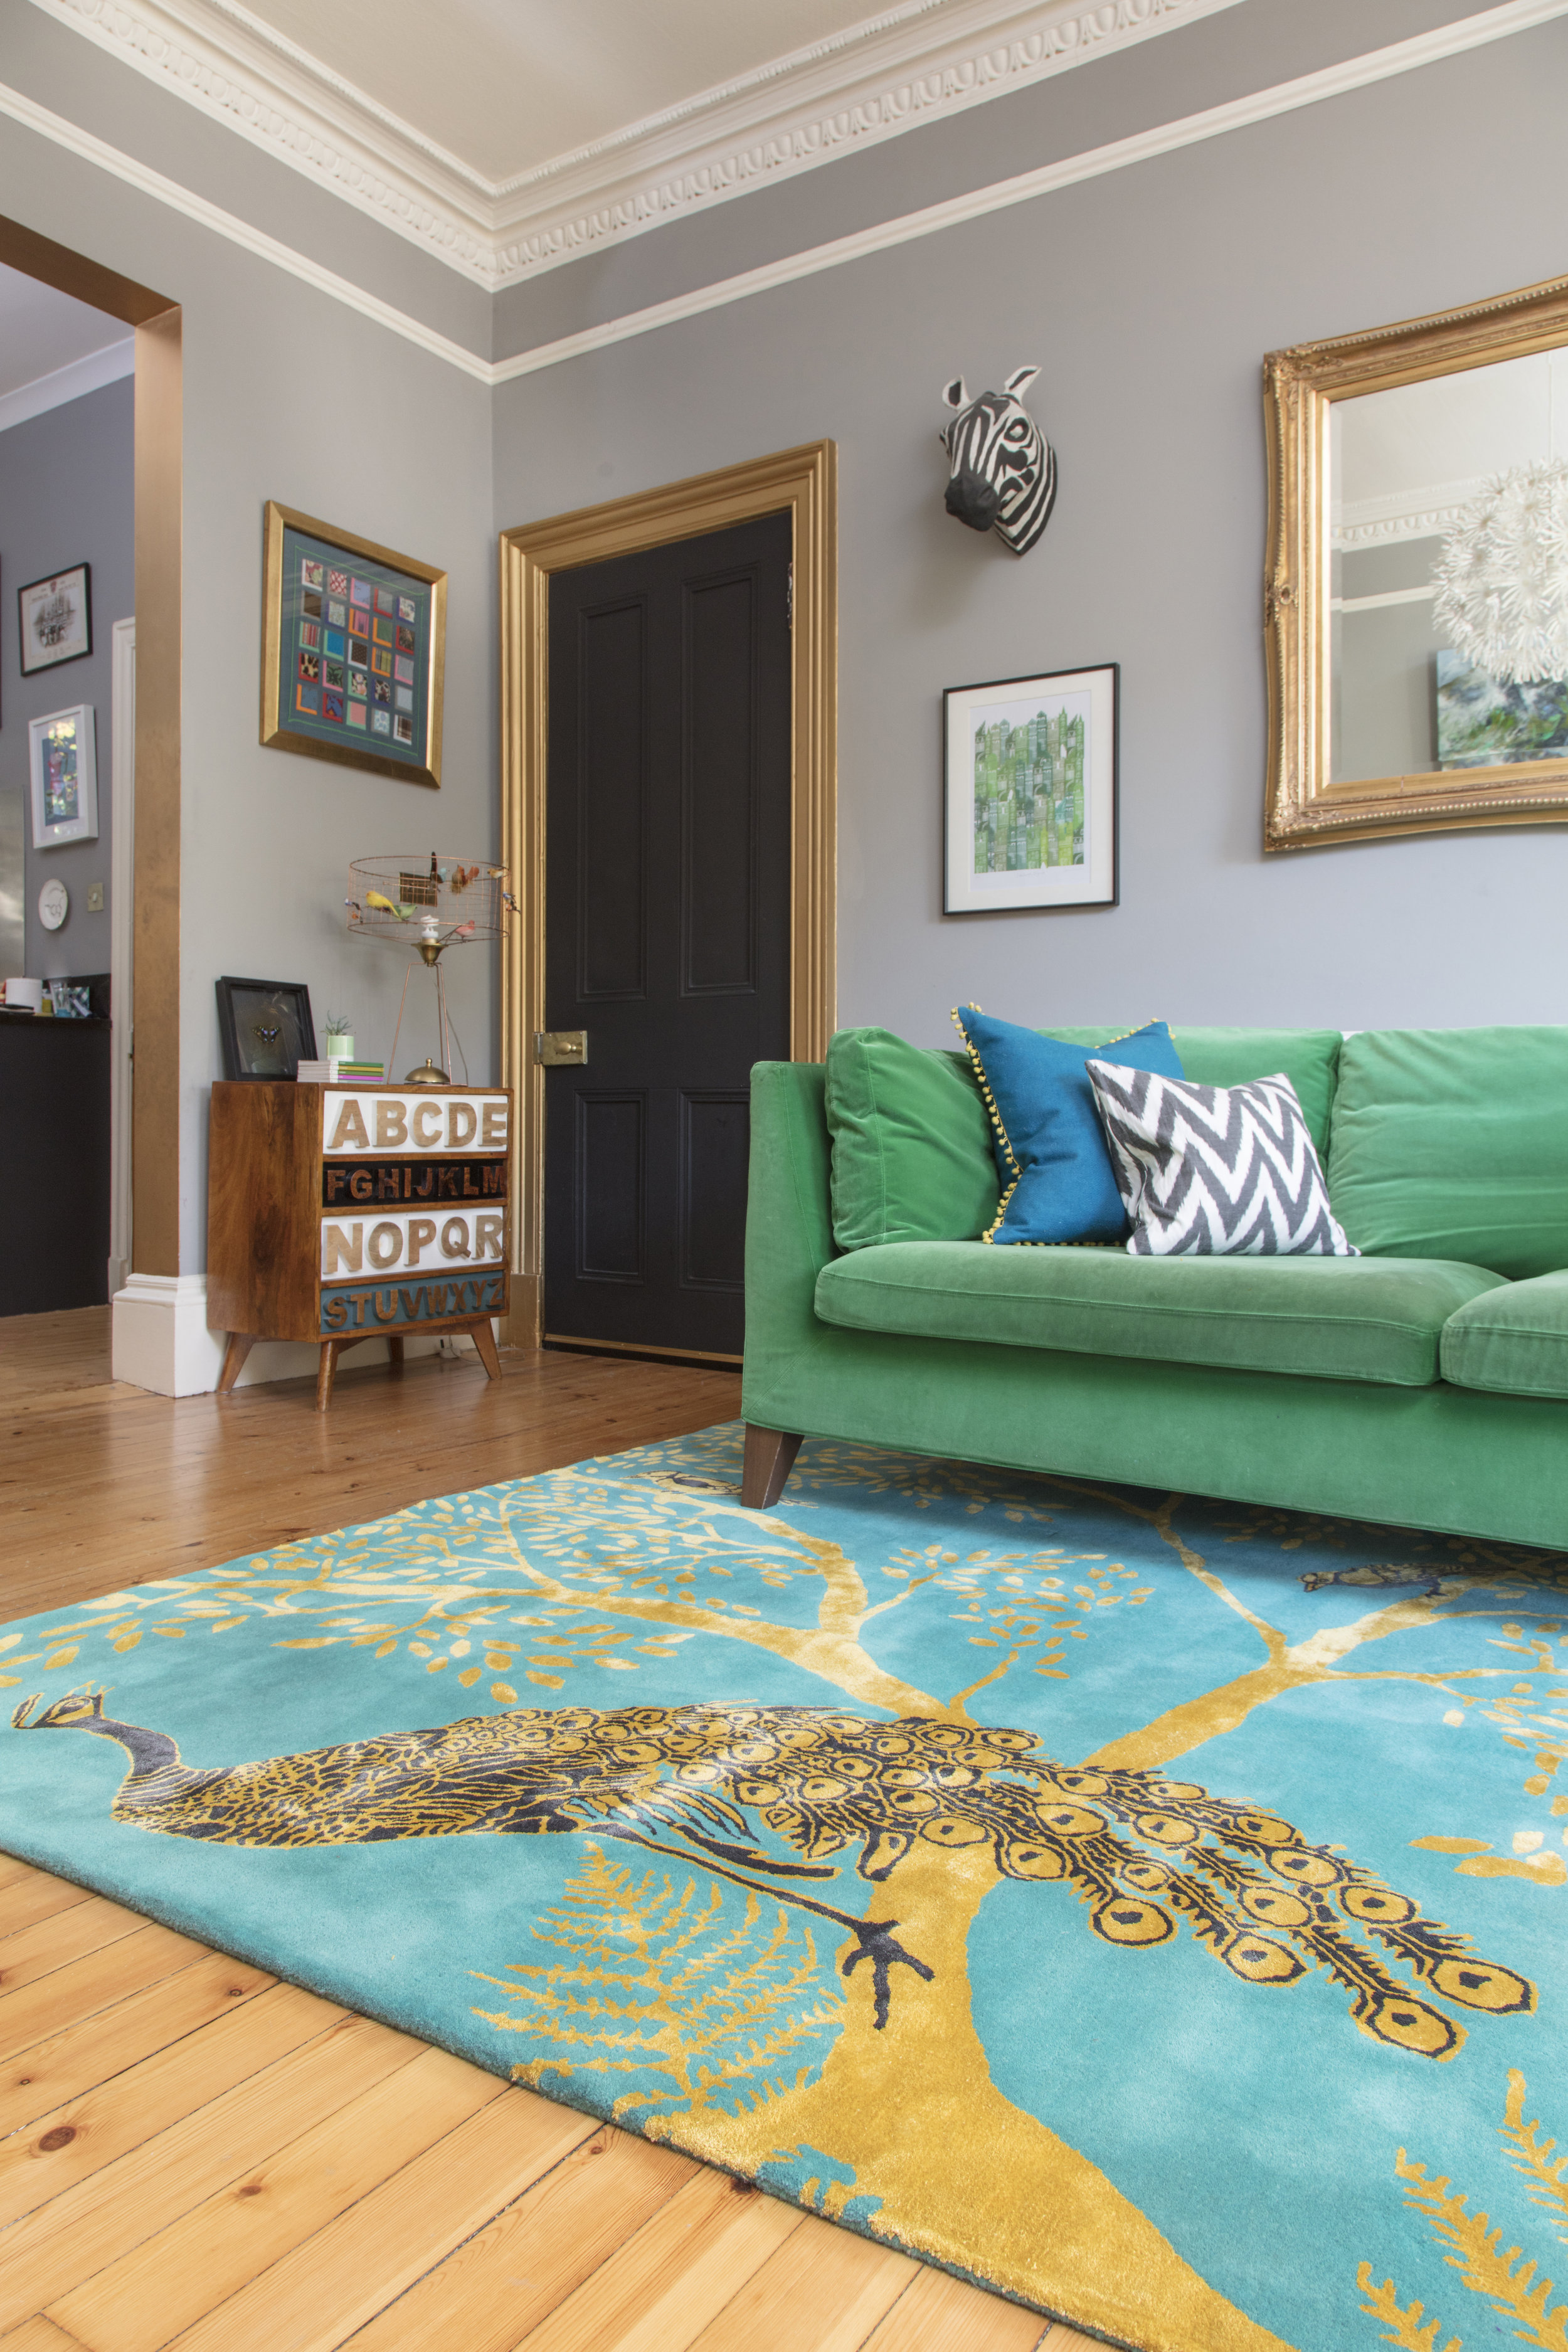 Wendy's Enchanted Wood rug in Emily Murray's home @pinkhouseliving